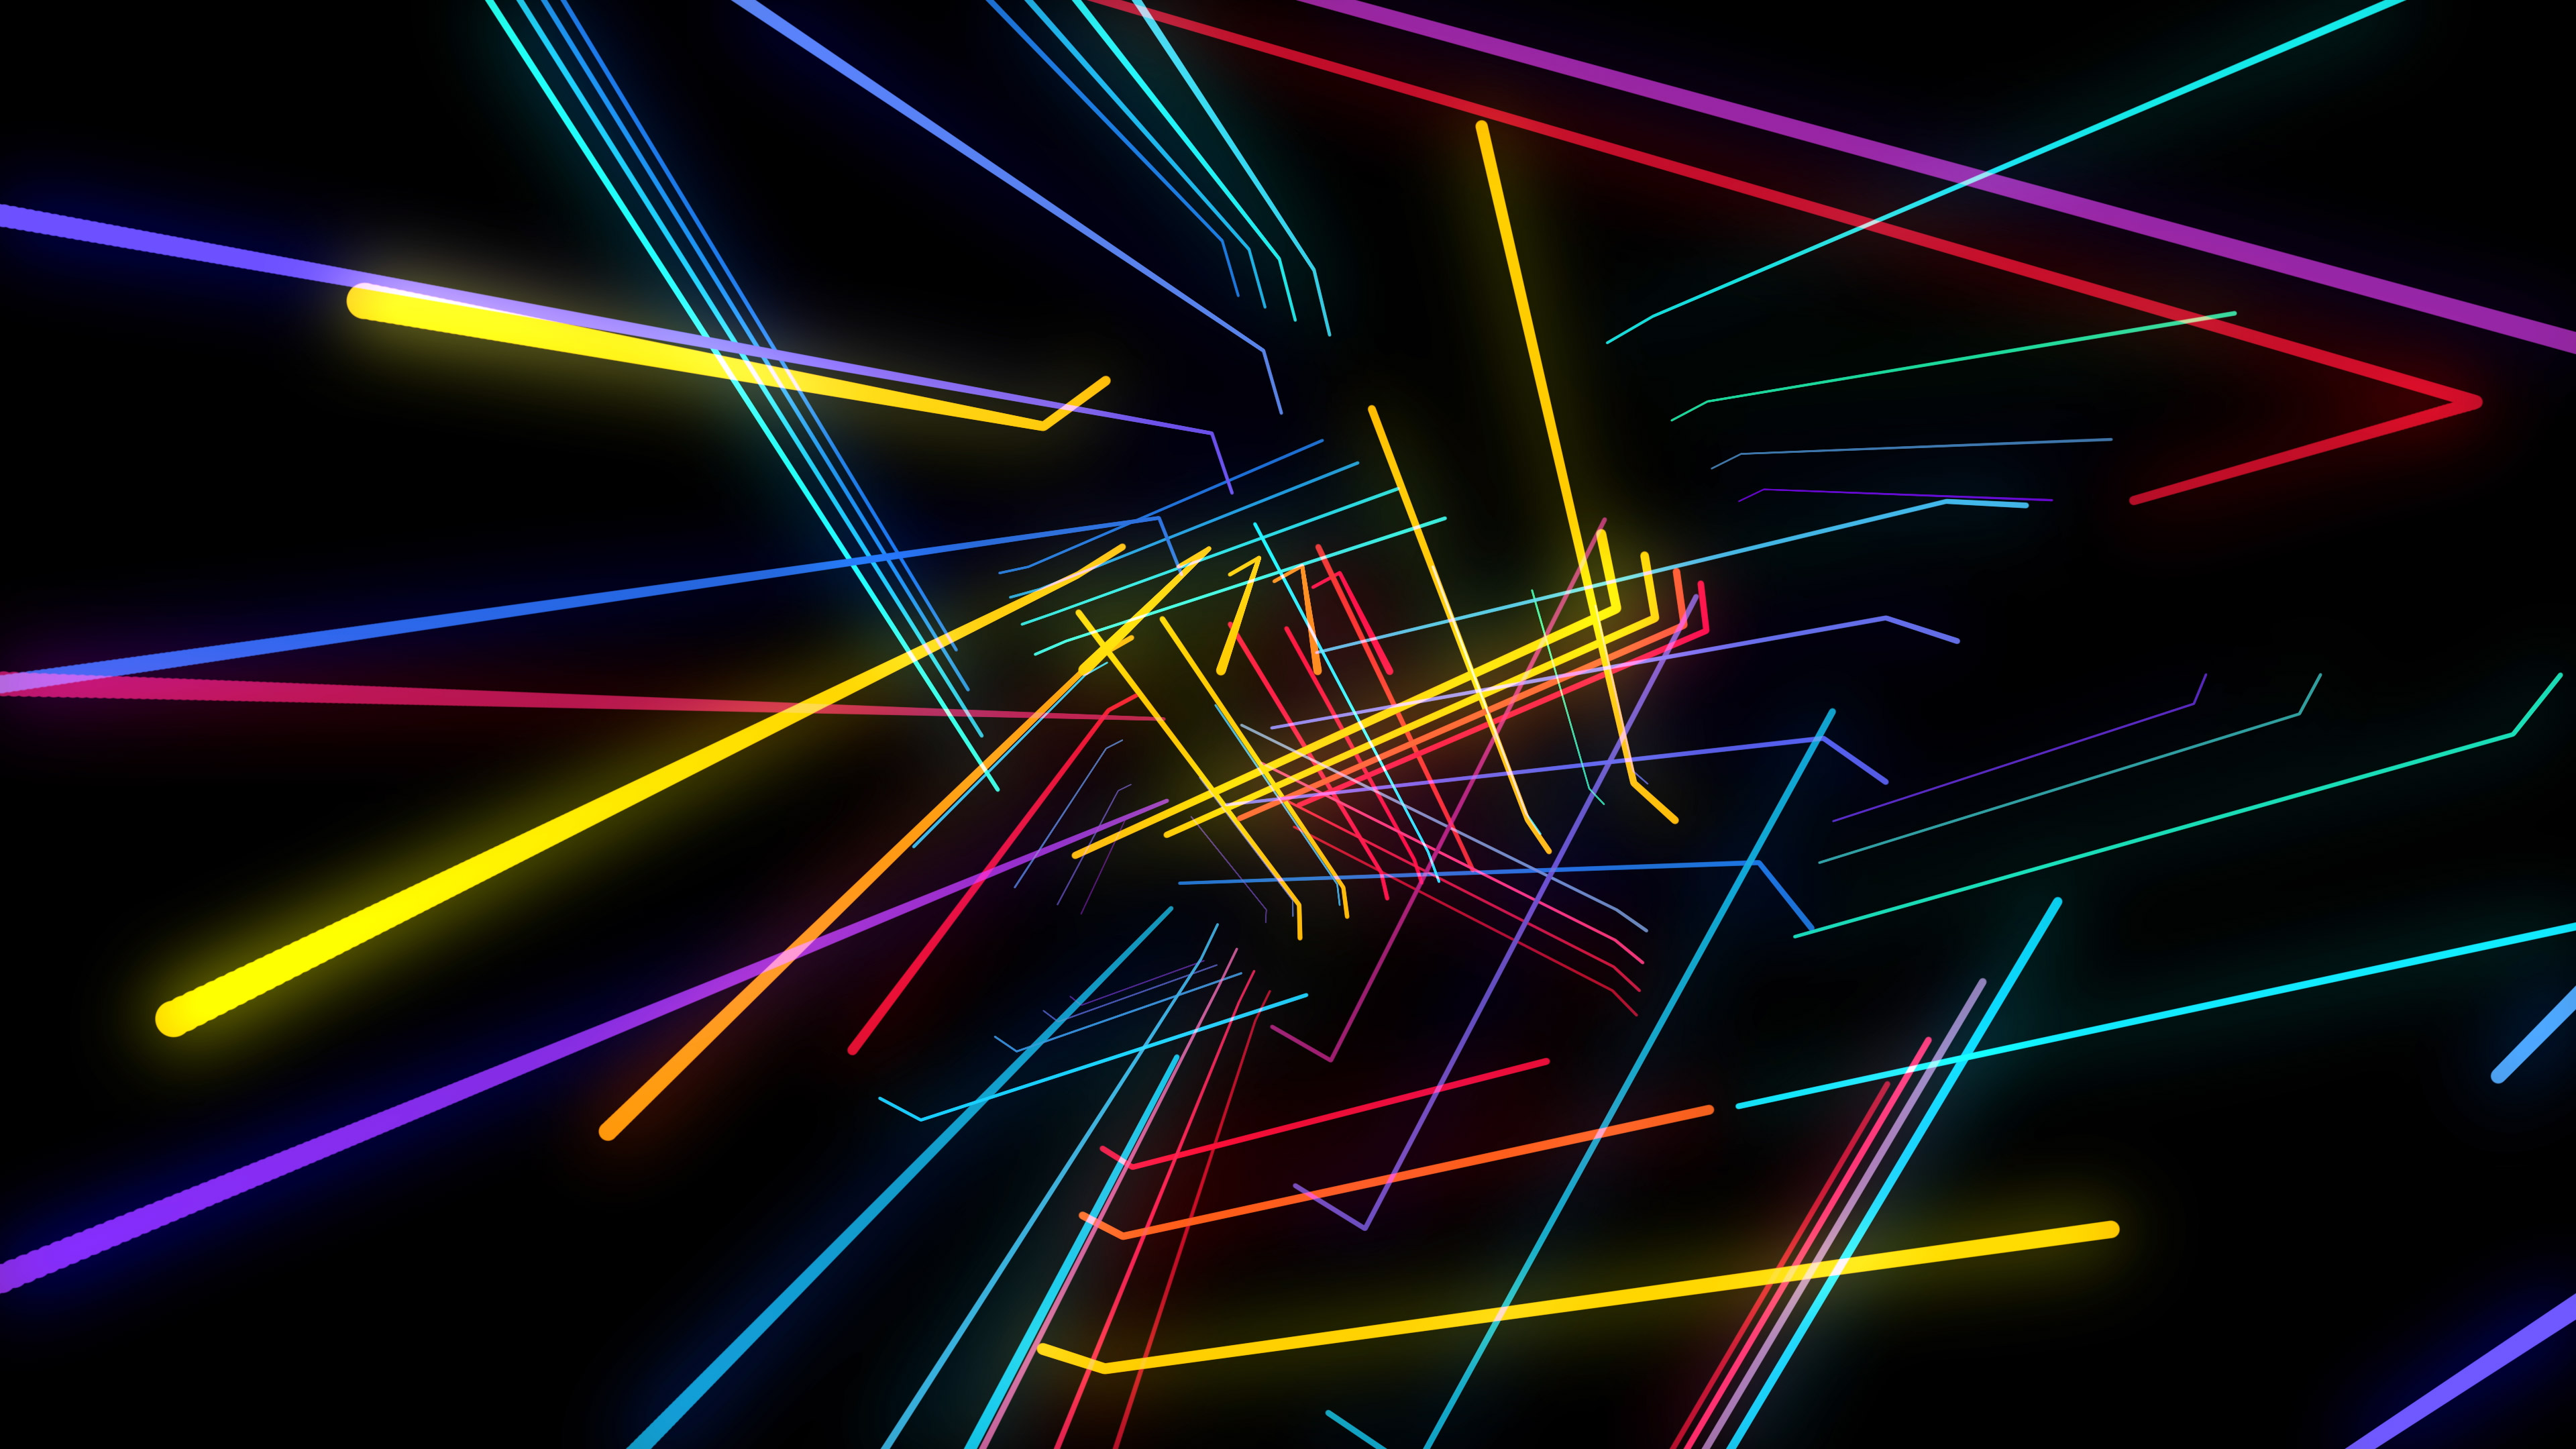 Colorful Lines 4K VJ loops Pack by Gesh tv